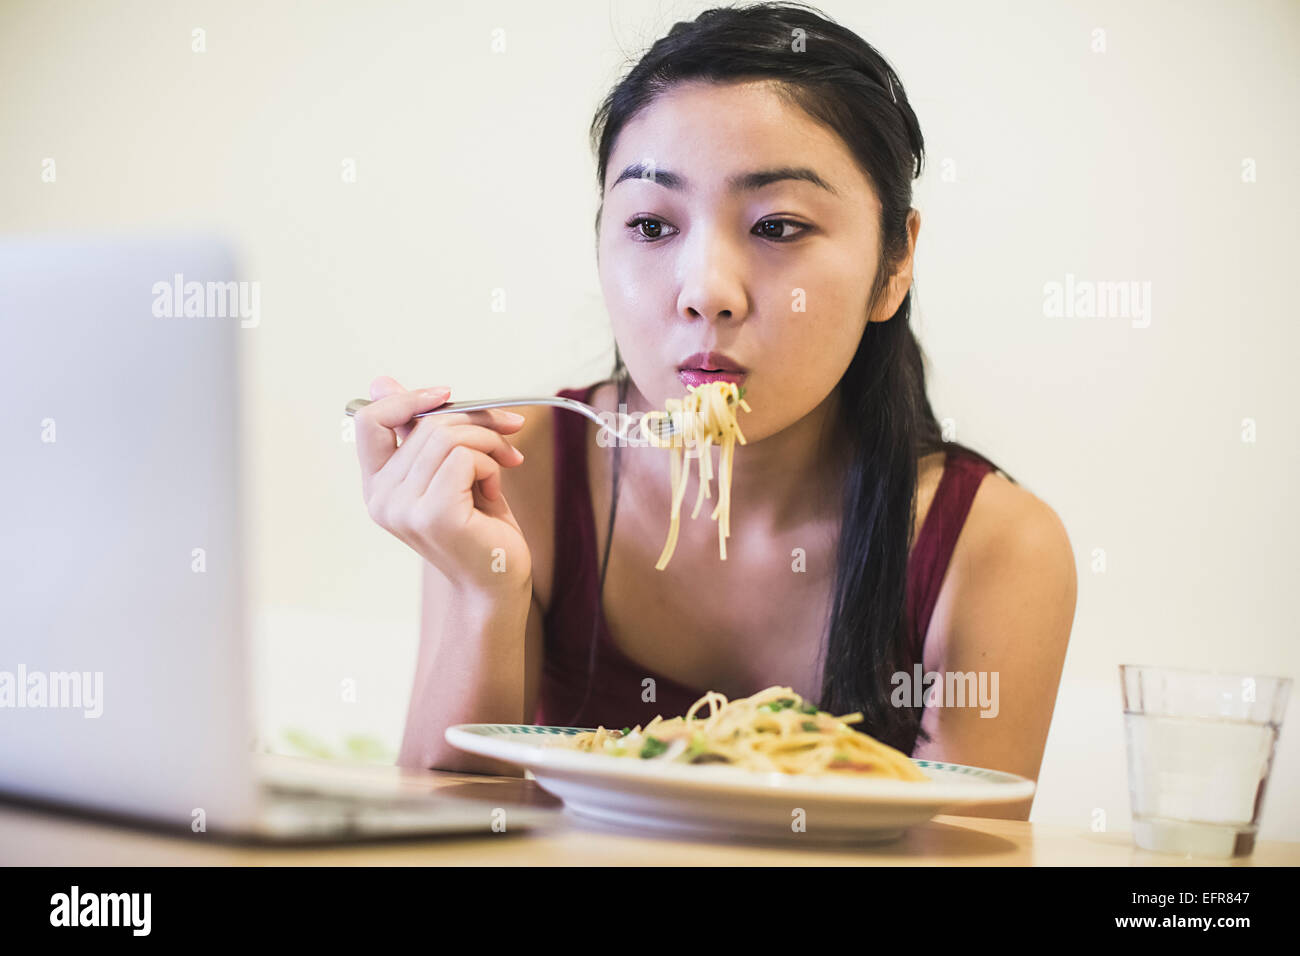 Young woman at table eating plate of noodles - Stock Image